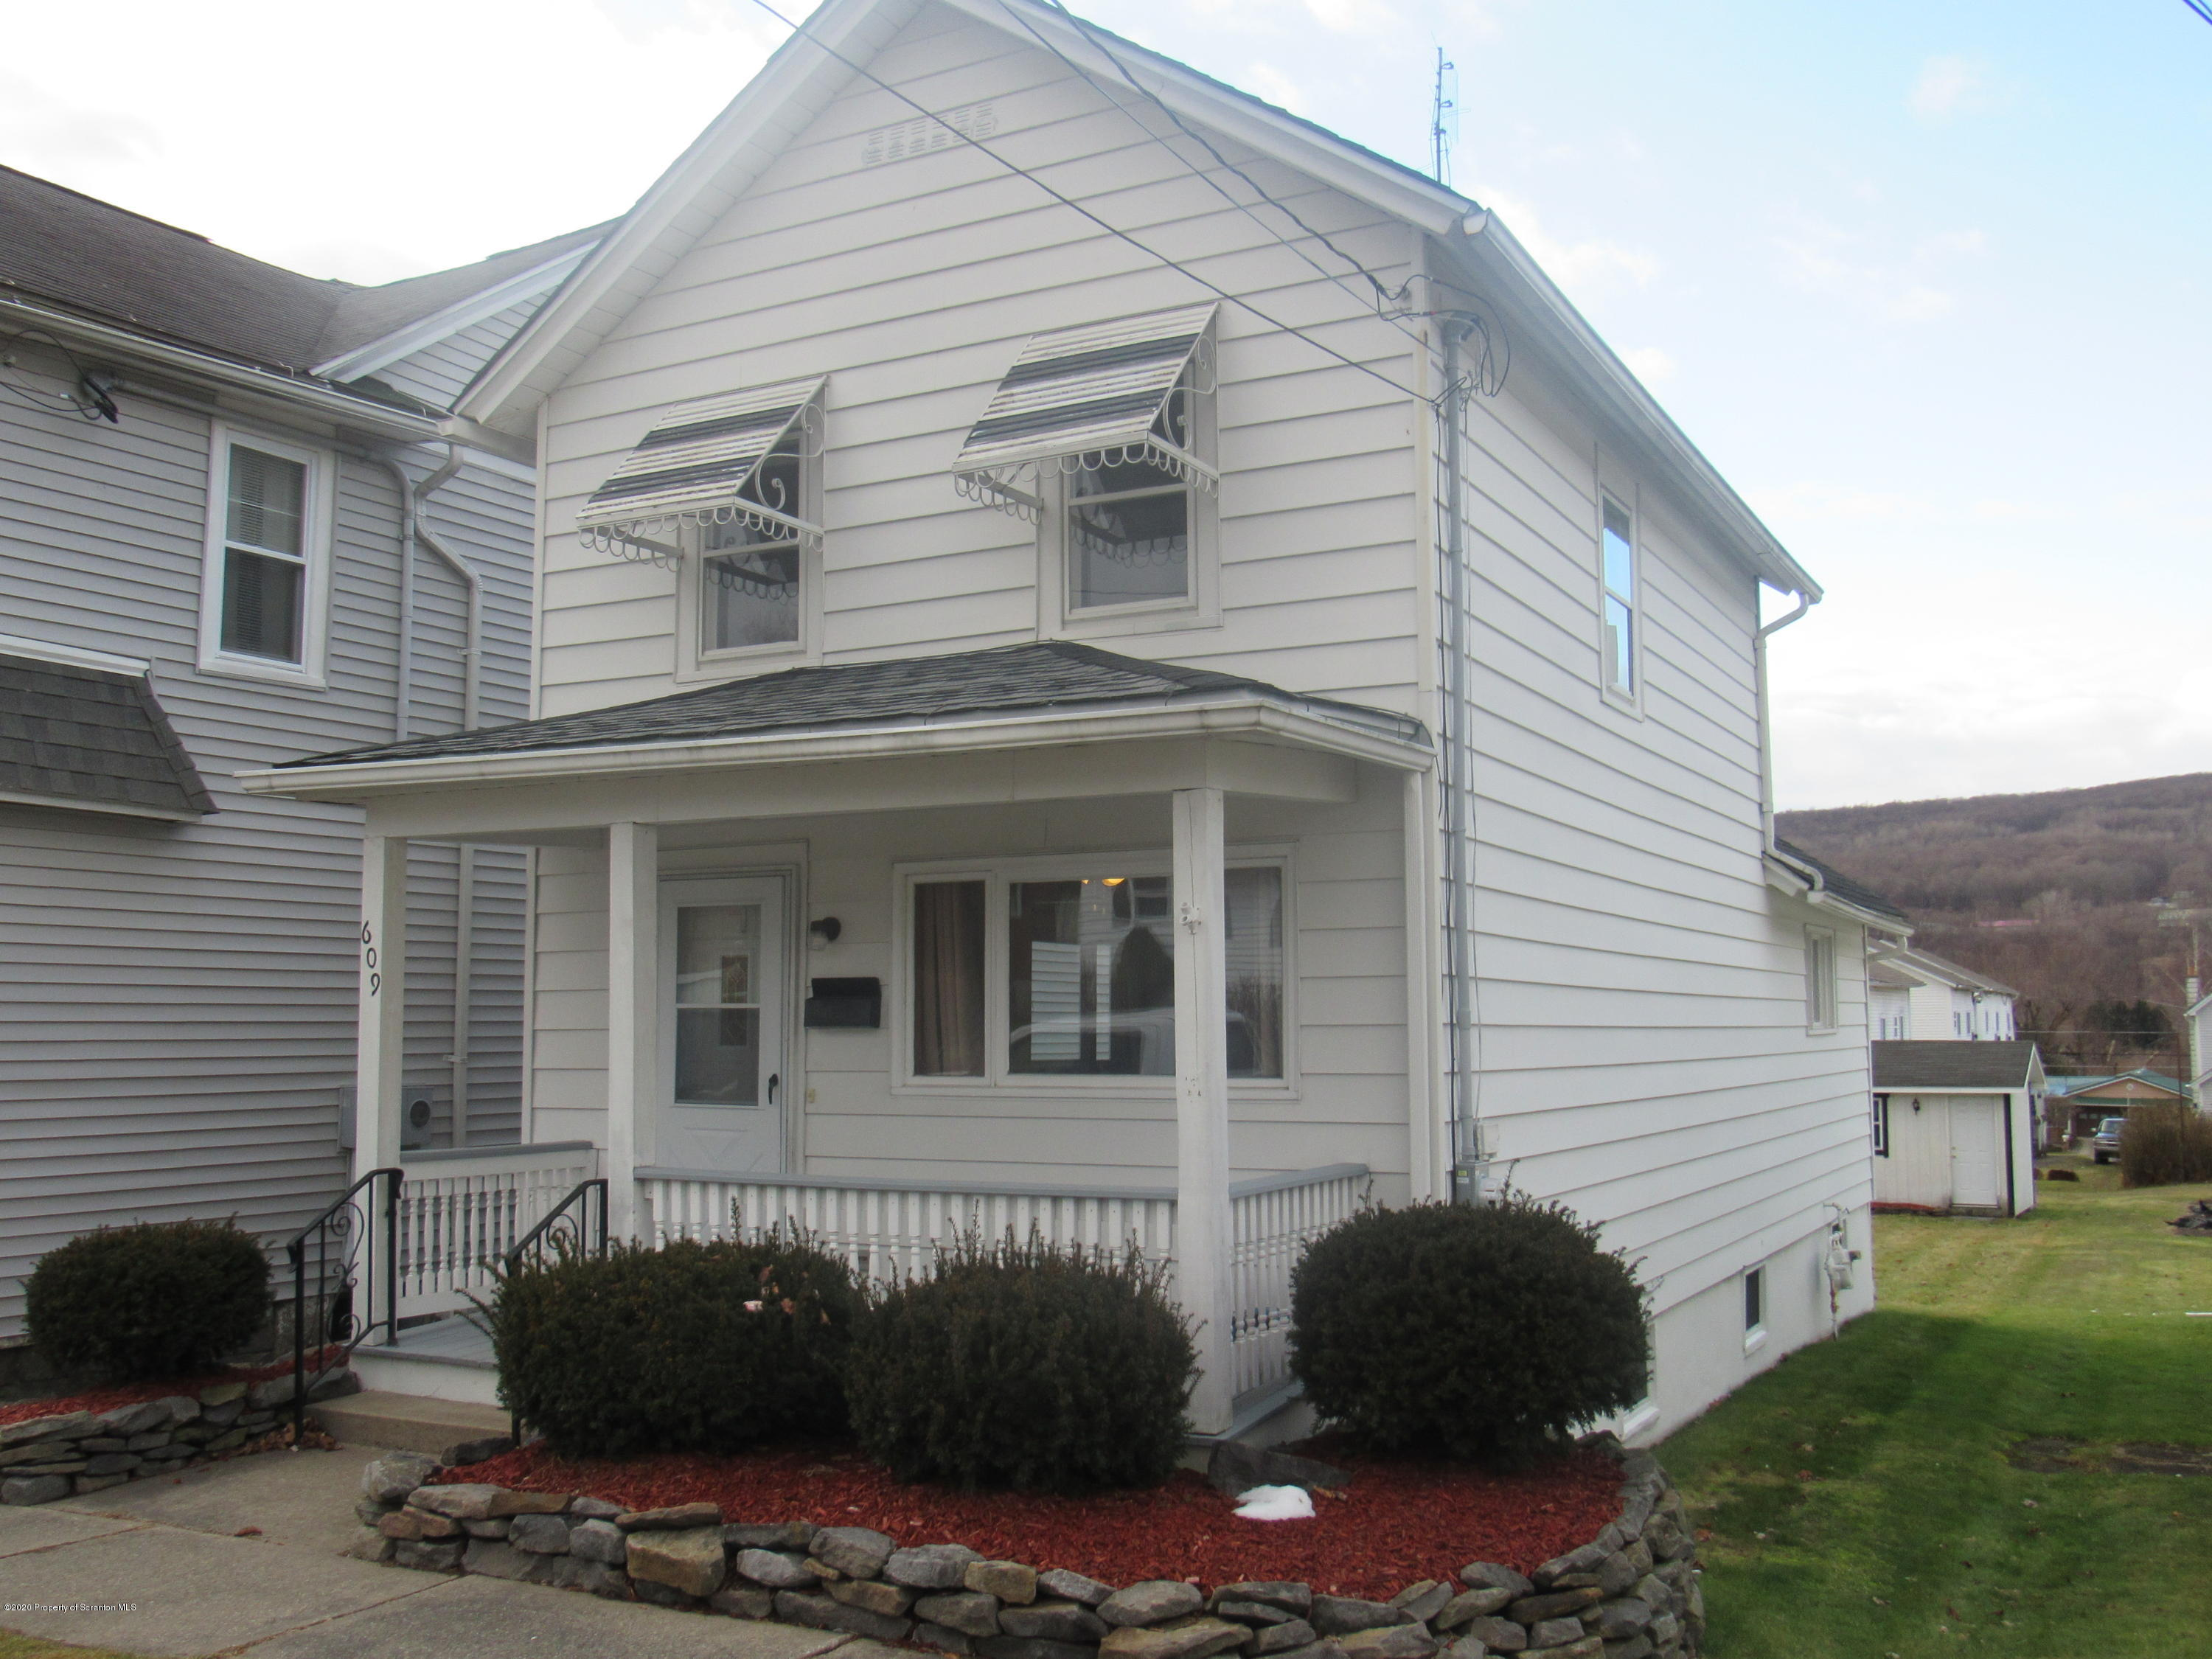 609 Delaware St, Mayfield, Pennsylvania 18433, 2 Bedrooms Bedrooms, 5 Rooms Rooms,1 BathroomBathrooms,Single Family,For Sale,Delaware,20-372